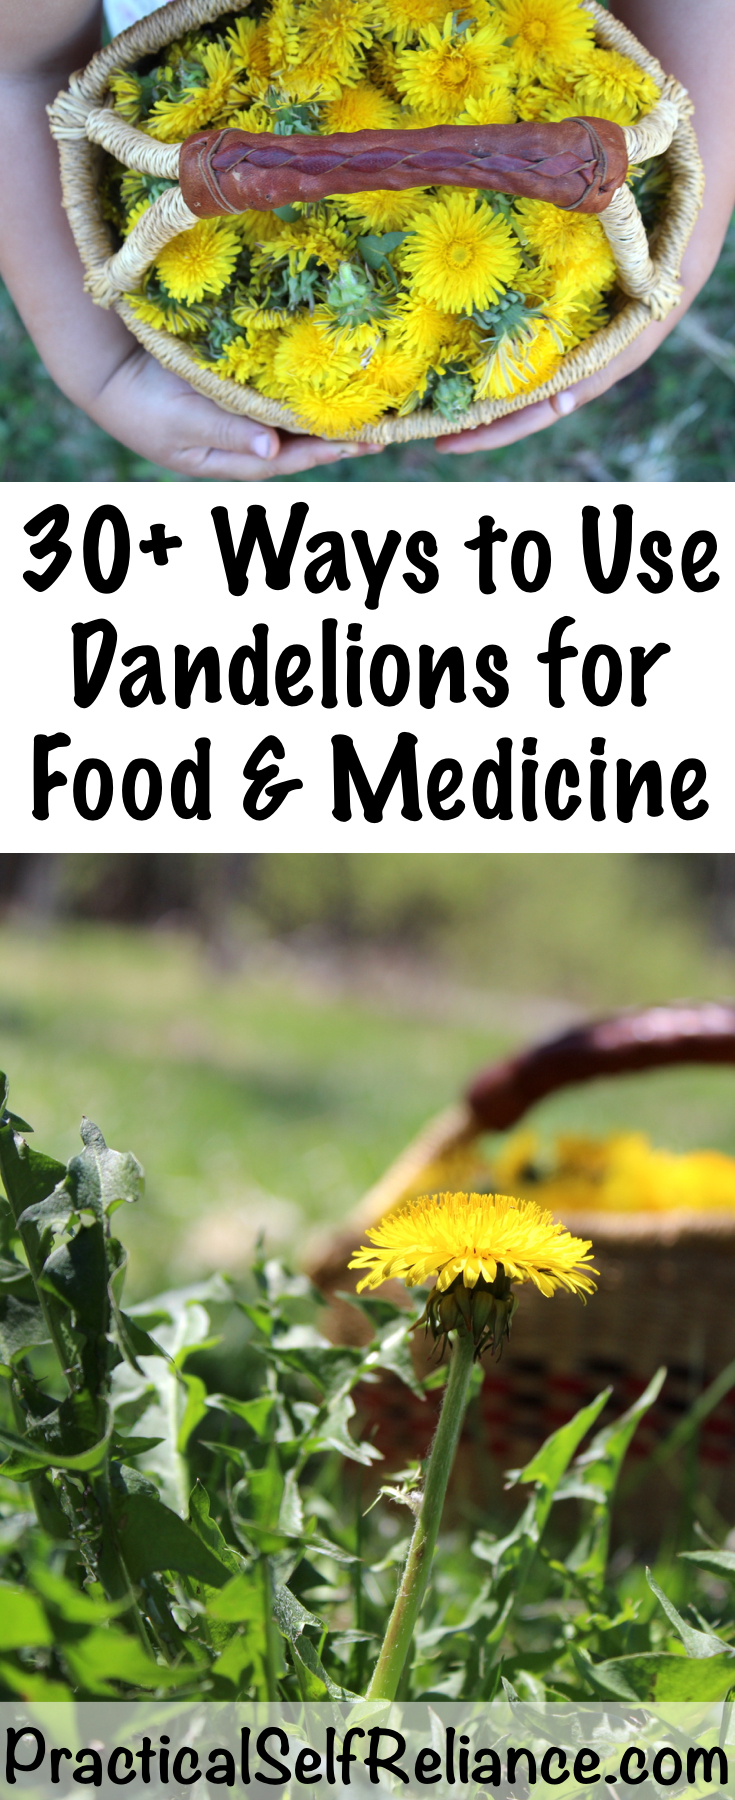 30+ Ways to Use Dandelions for Food and Medicine